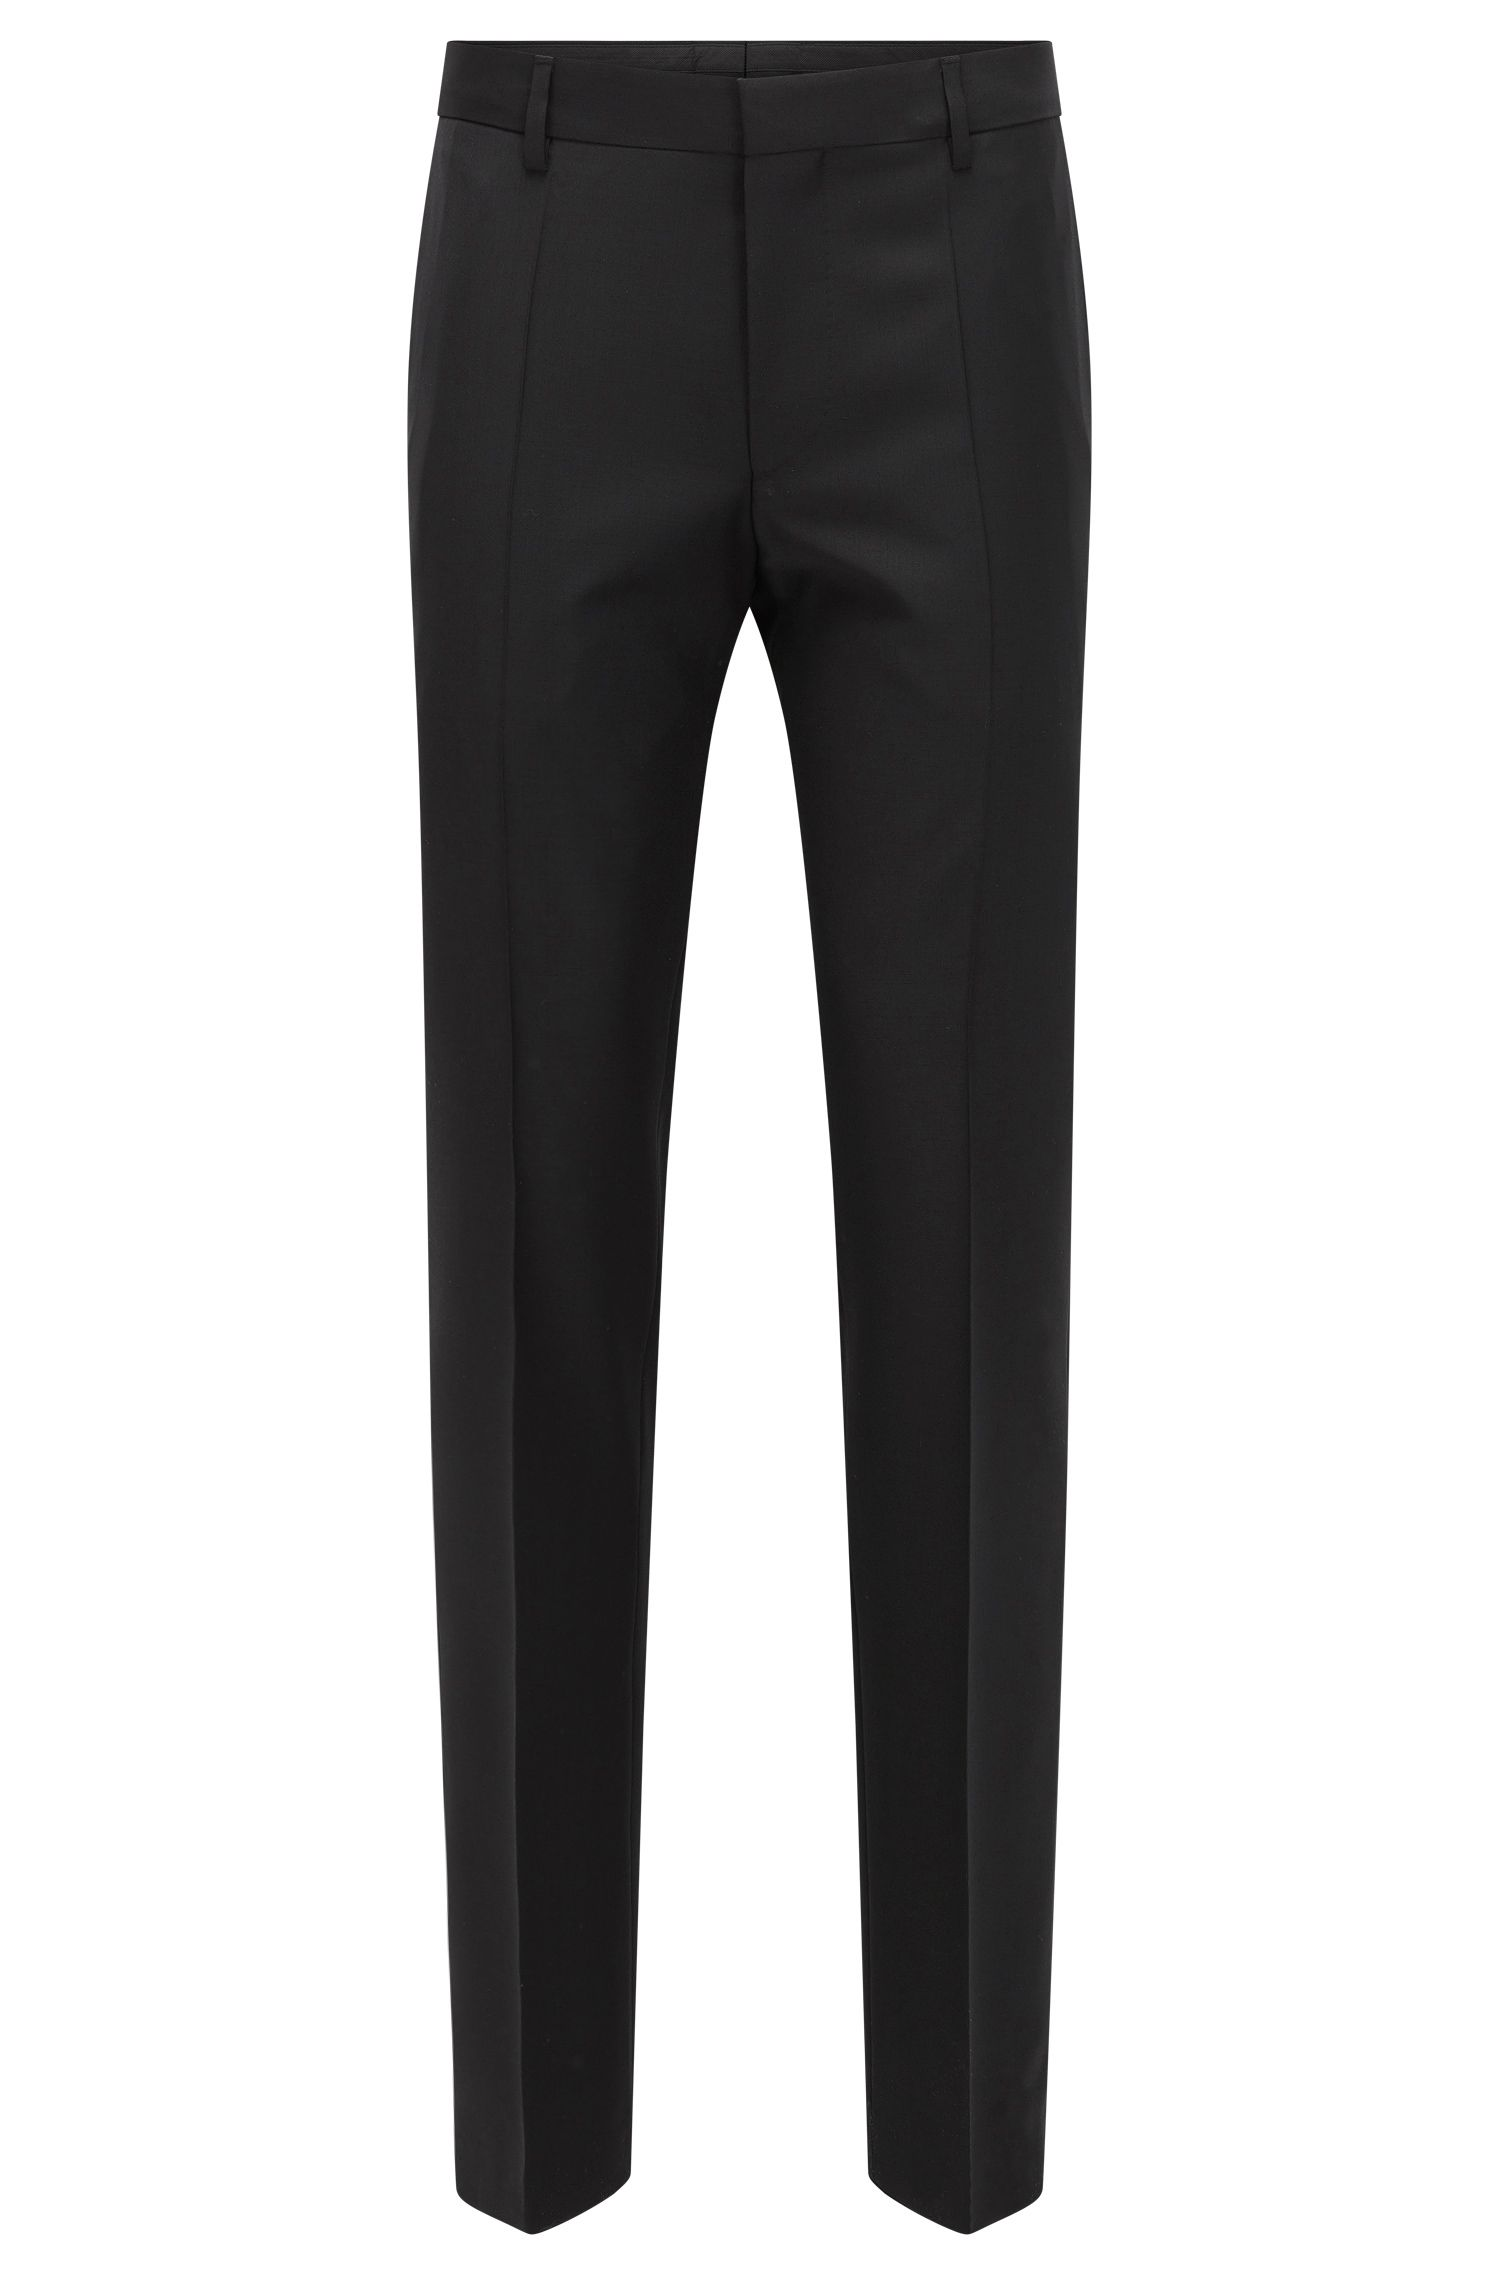 Virgin Wool Cashmere Dress Pant, Slim Fit | Benso, Black